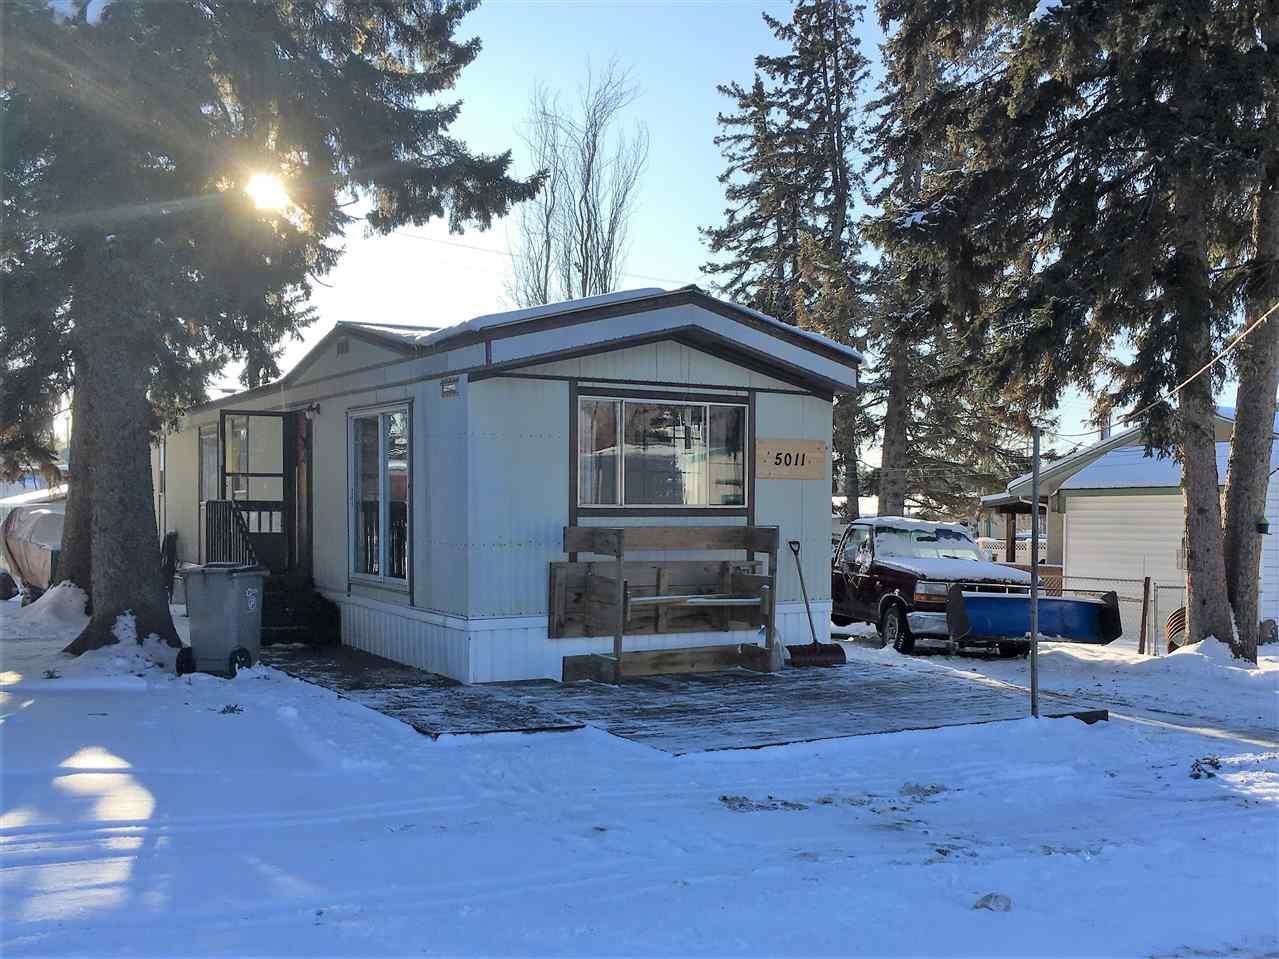 Removed: 5011 51 Avenue, Breton, AB - Removed on 2020-07-16 00:45:26